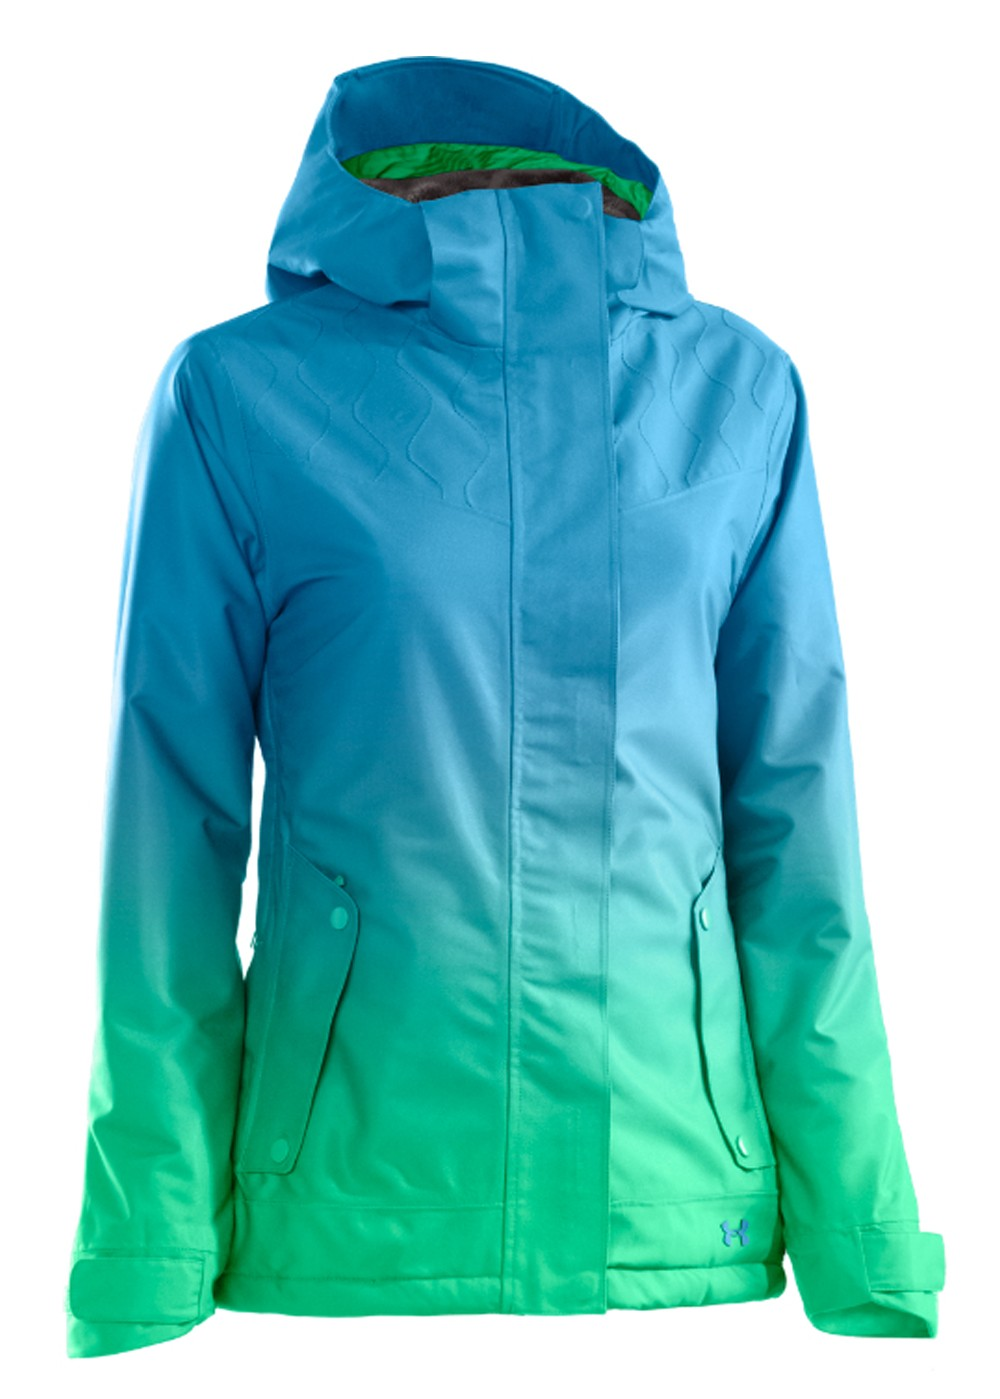 Best ski jacket women